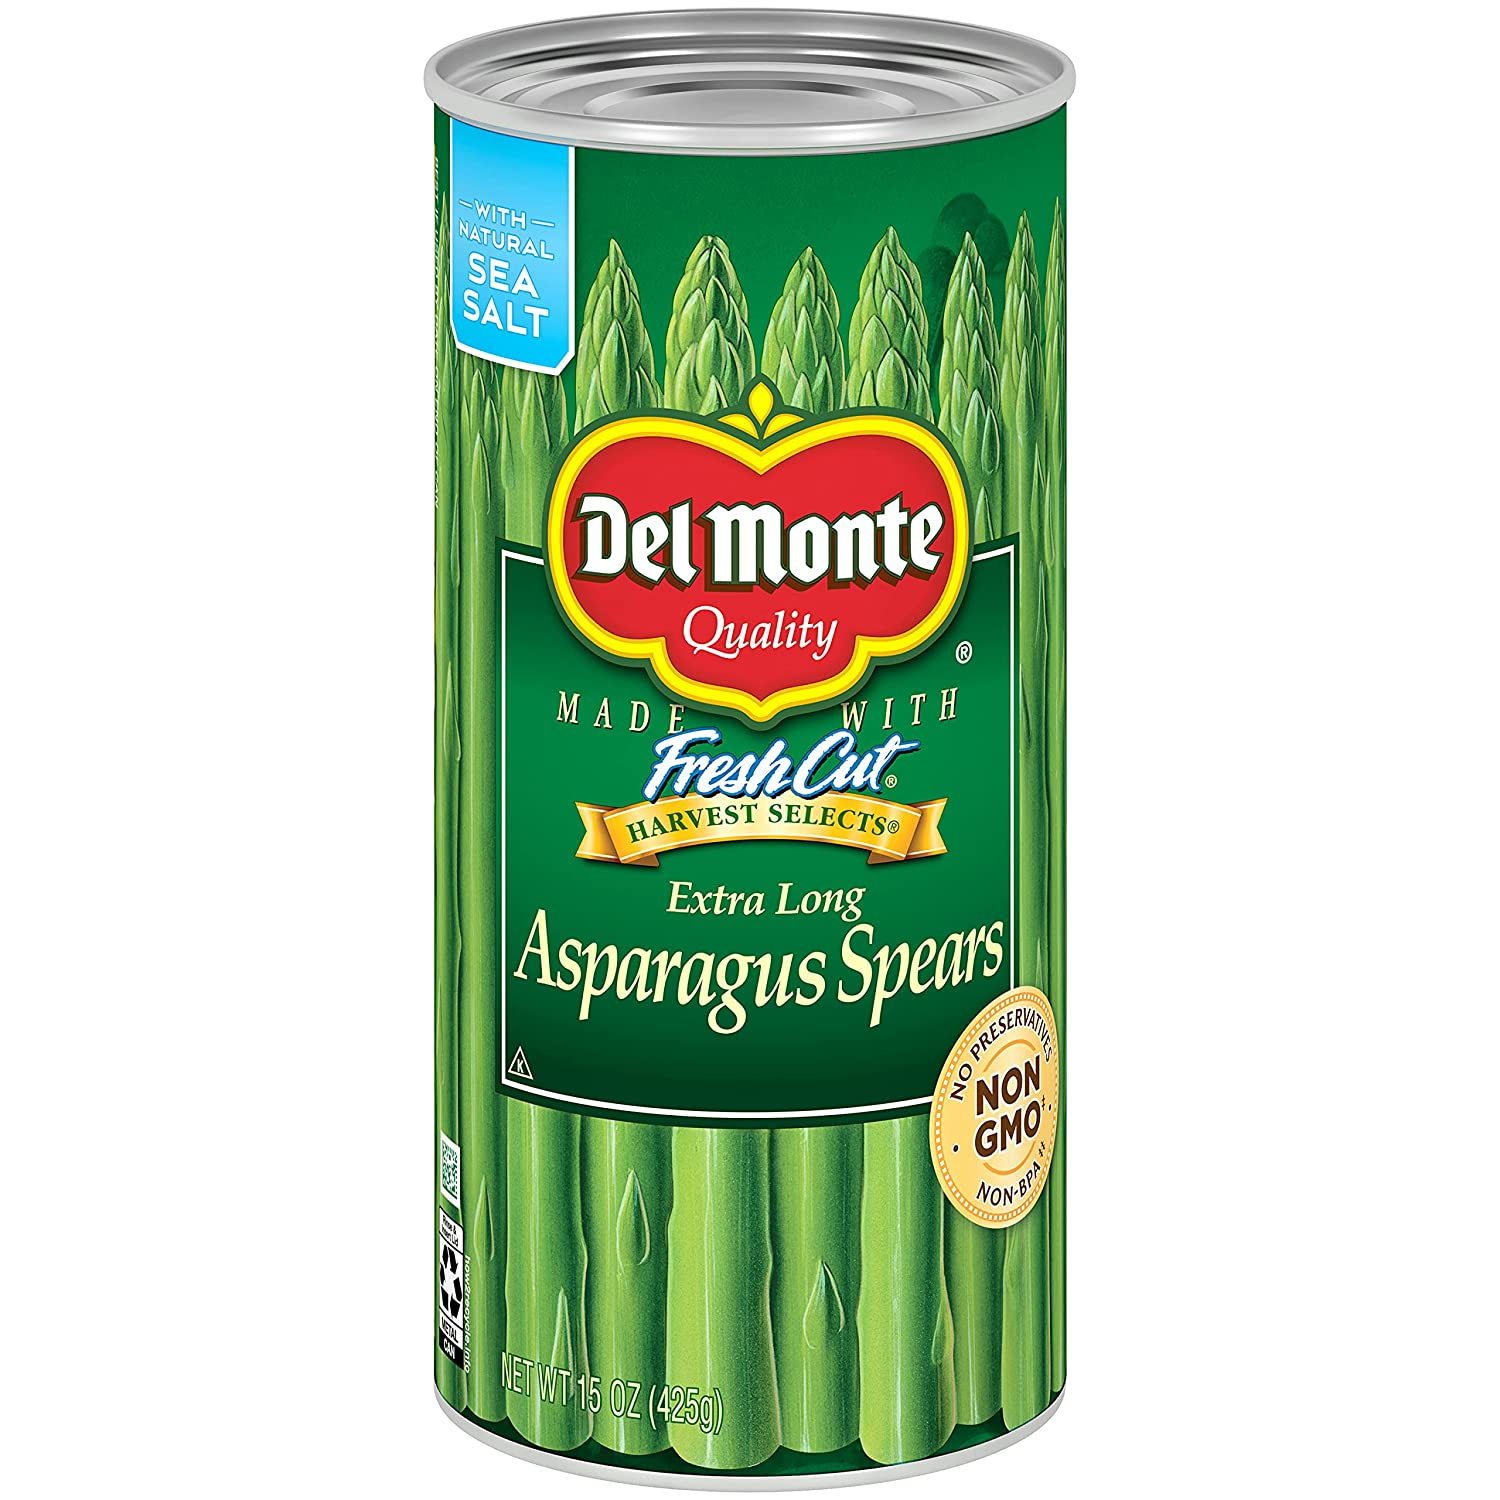 Max Max 88% OFF 41% OFF Del Monte Canned Extra Long Asparagus 15-Ounce Spears Pack of